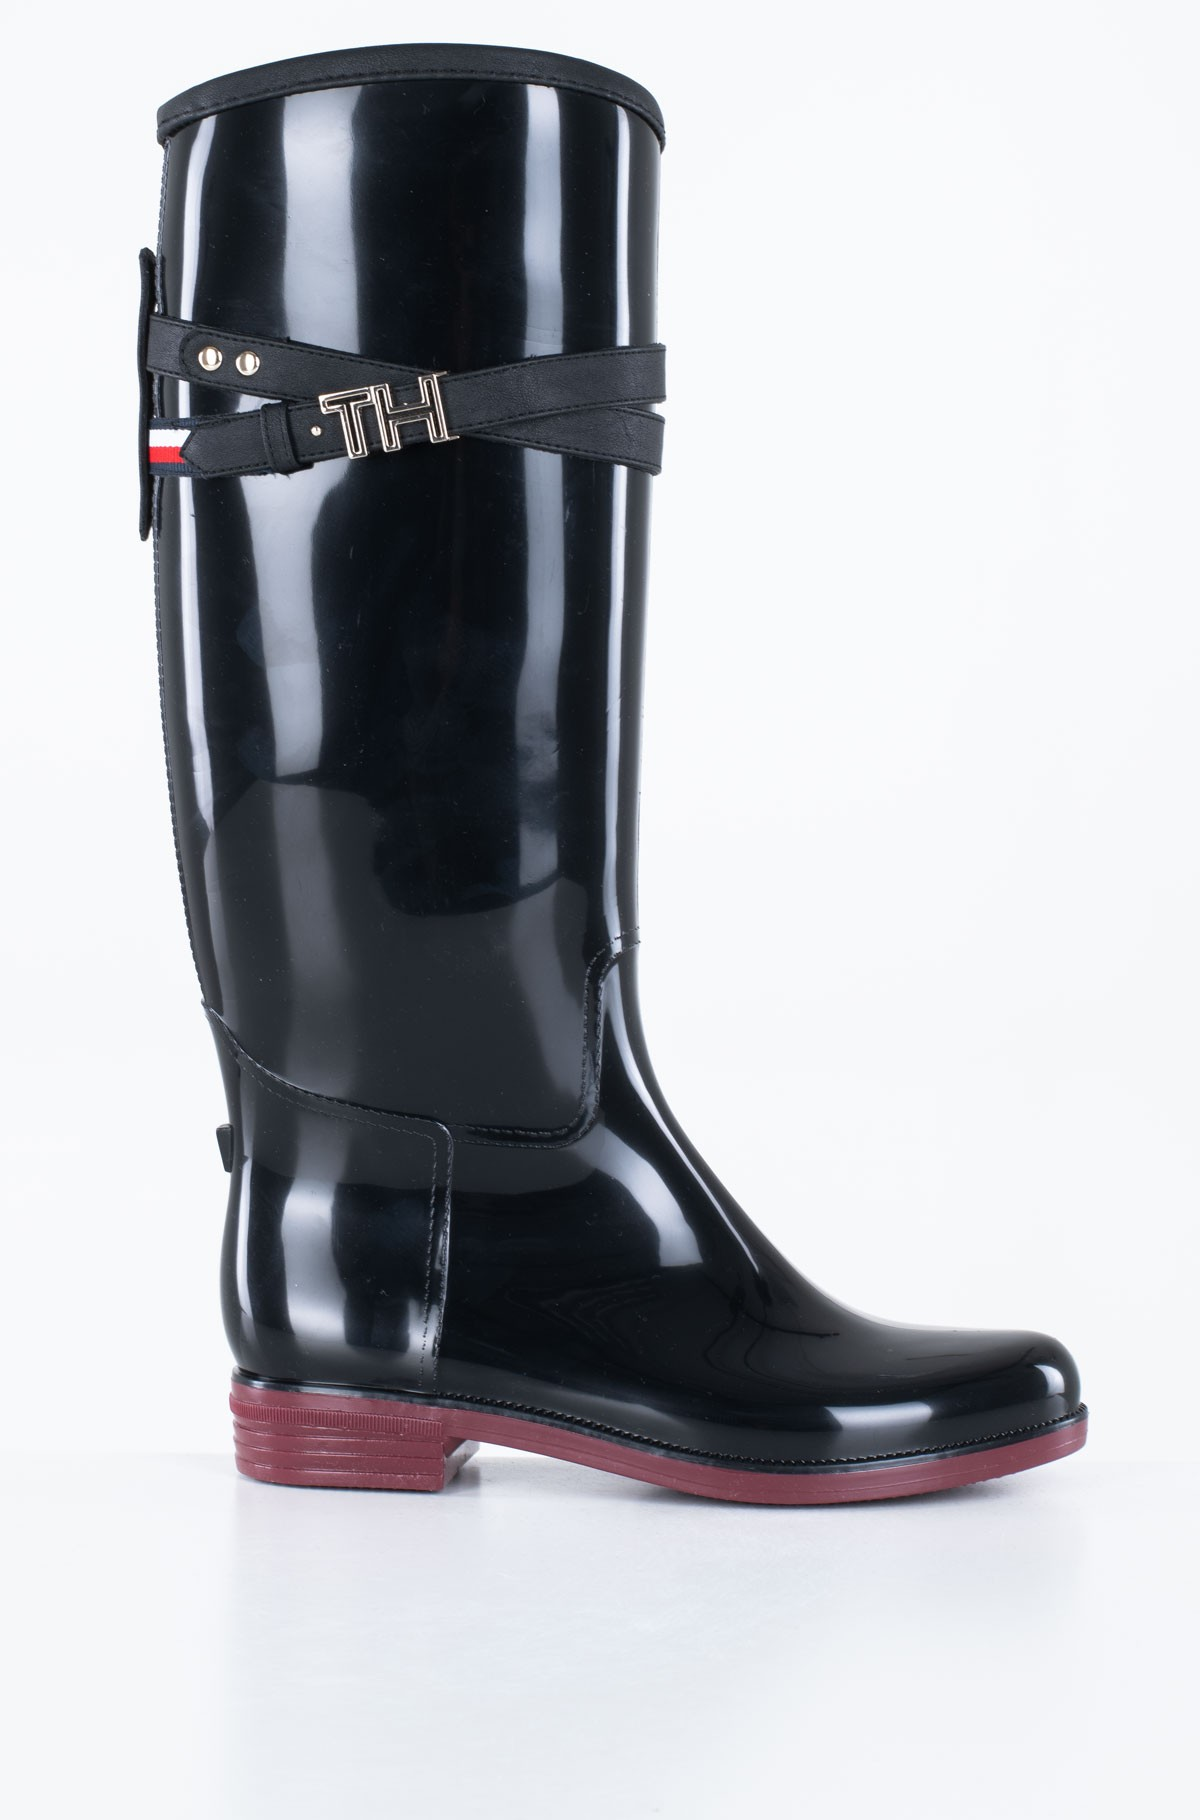 Guminiai batai TH HARDWARE RUBBER LONGBOOT-full-1